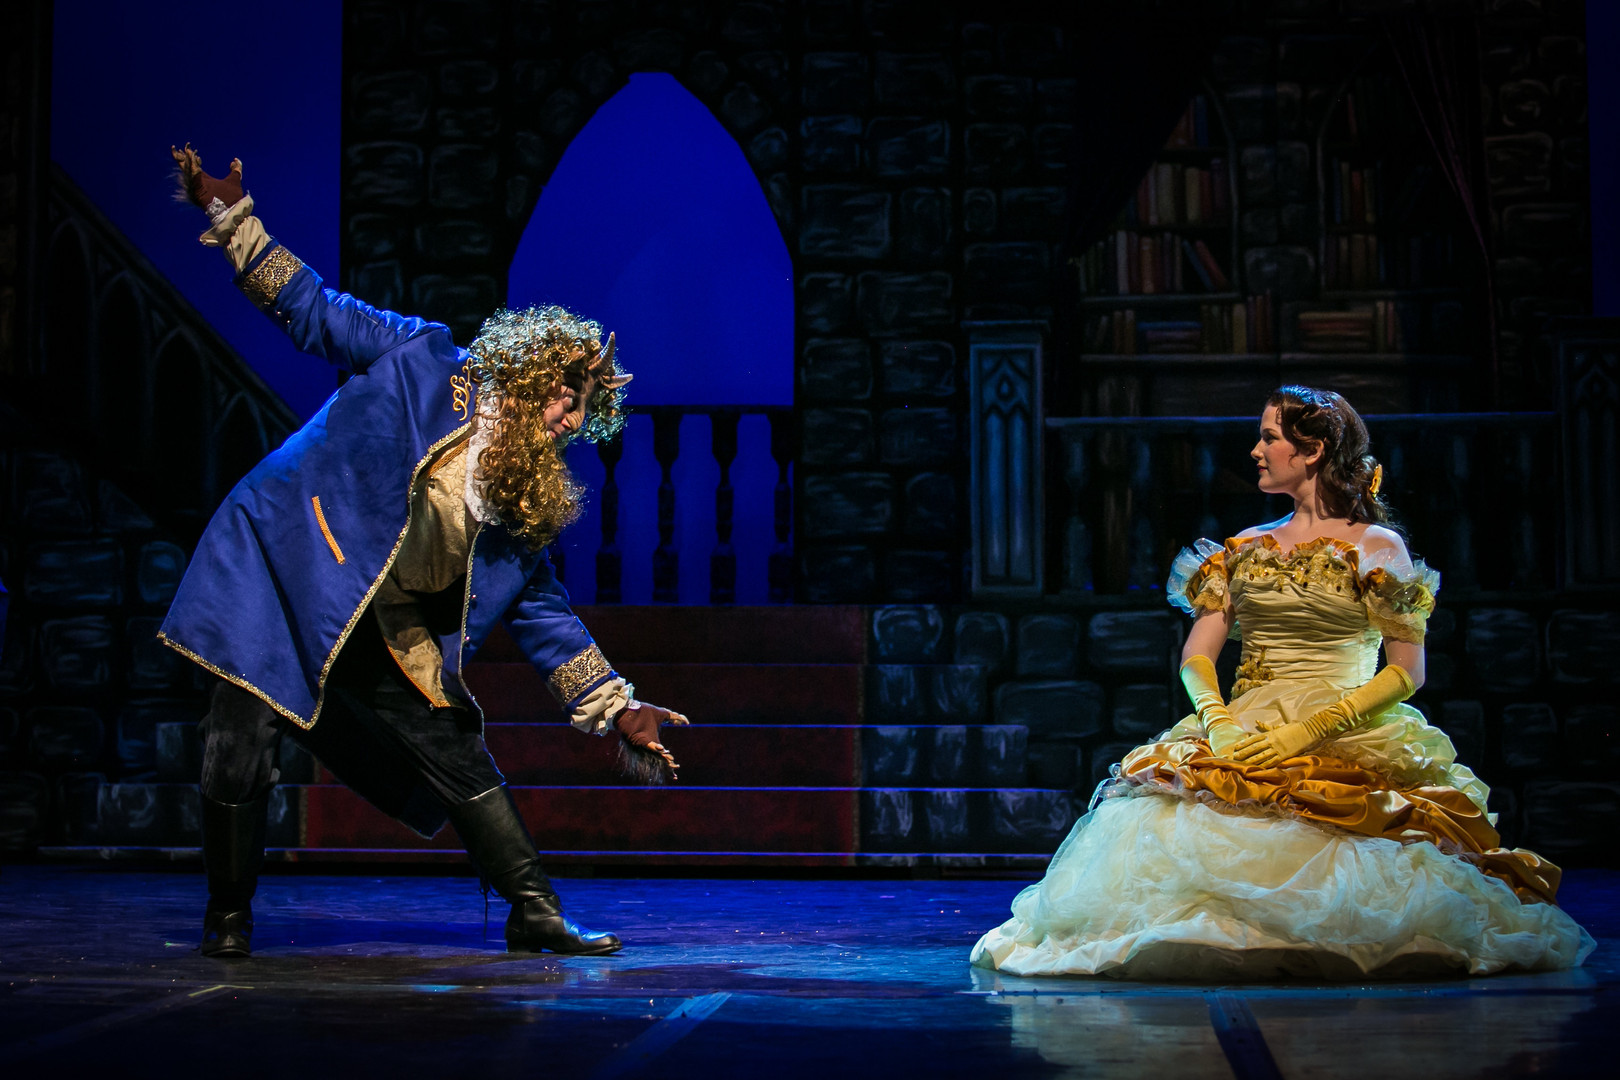 beauty-beast-newmarket-theatre-38.jpg